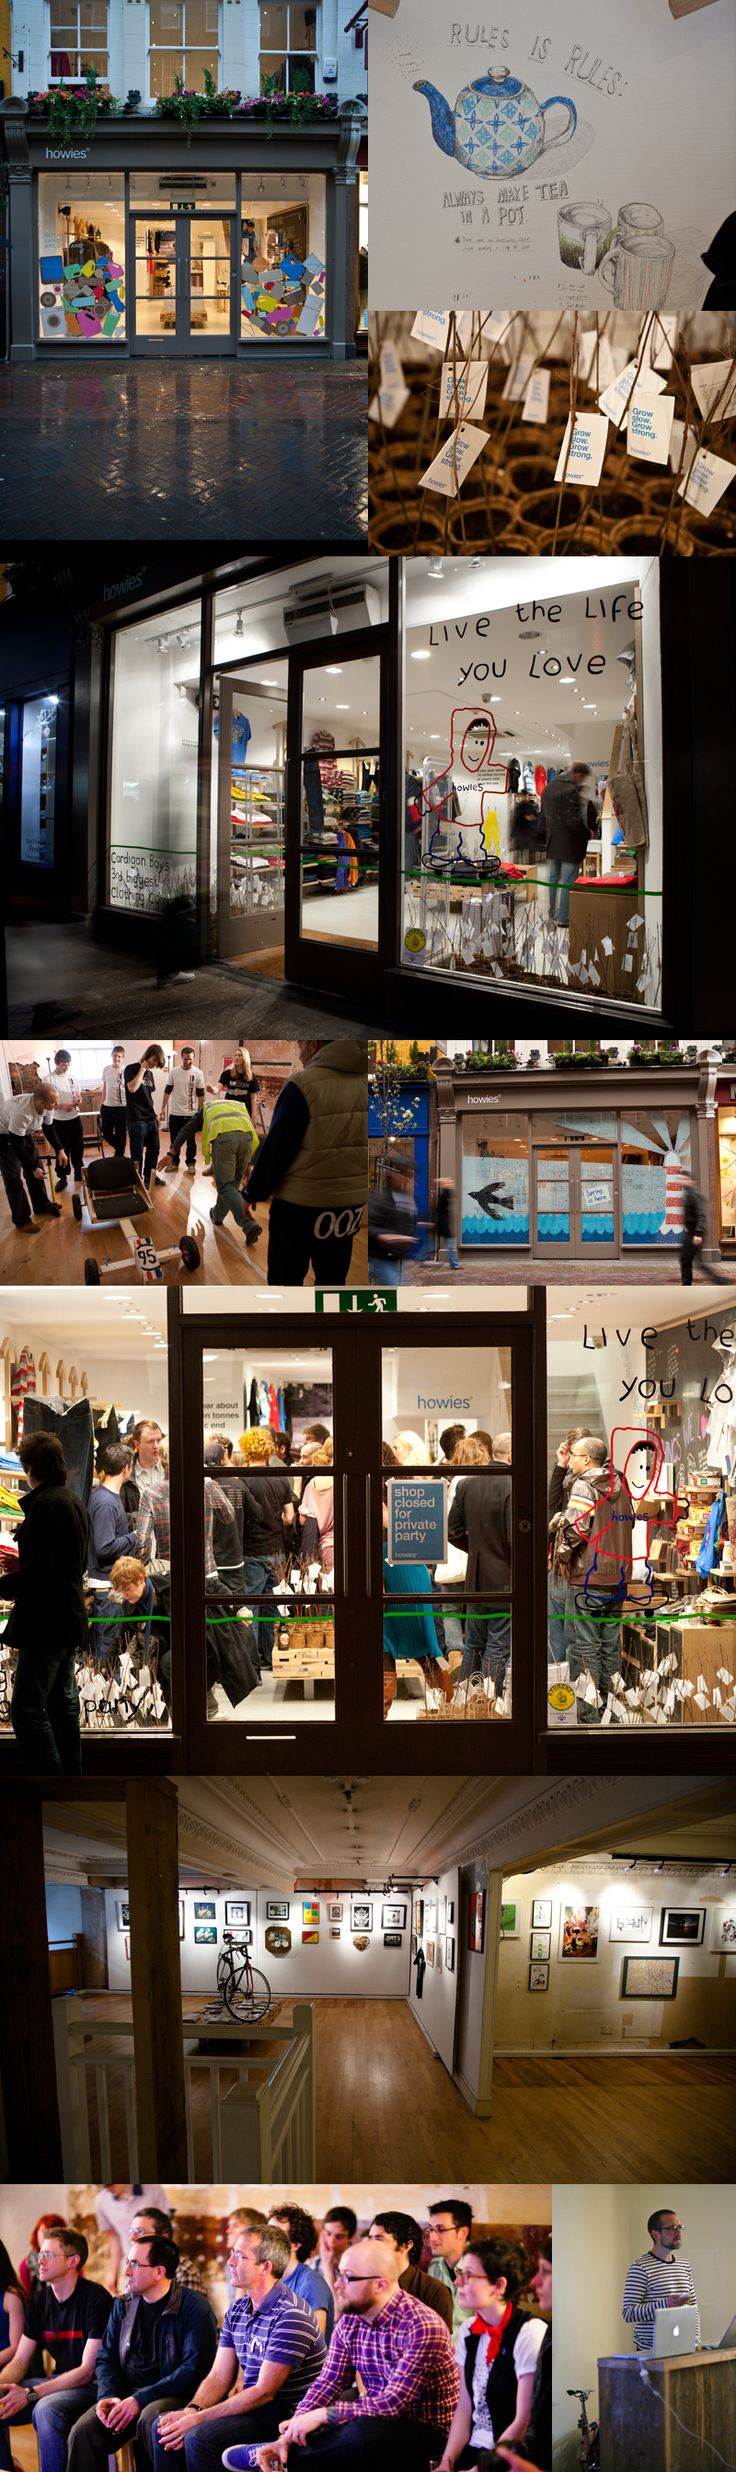 The little shop at 42 Carnaby Street. Photo by Nick Hand. Posted December 30, 2011 on his blog.